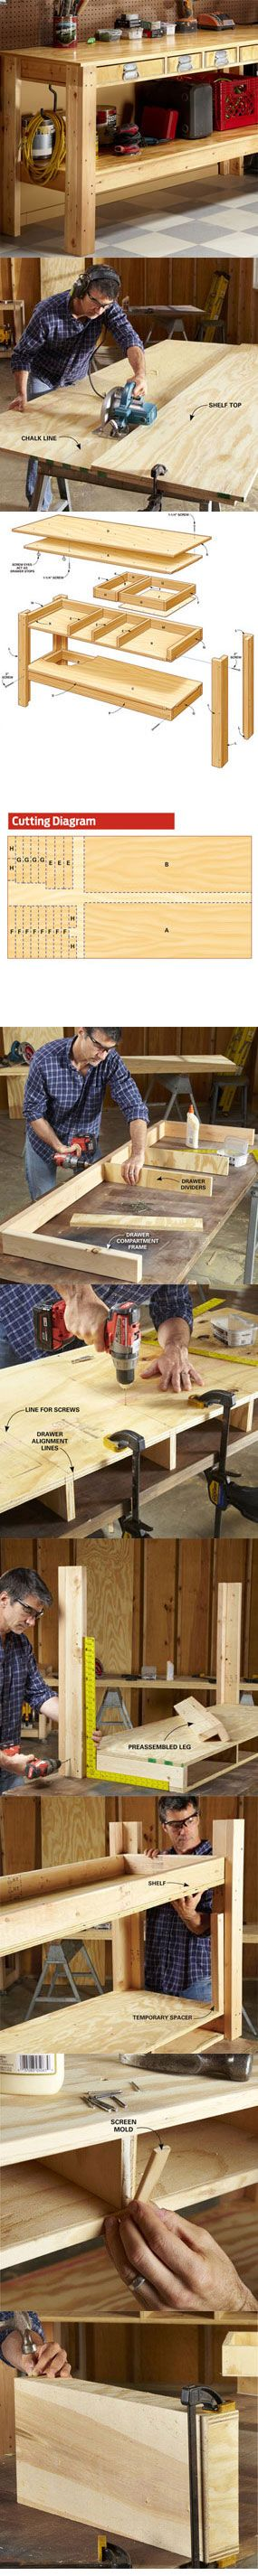 Use this simple workbench plan to build a sturdy, tough workbench that'll last for decades. It has drawers and shelves for tool storage. It's inexpensive. And even a novice can build it in one day. Get your simple workbench plans at http://www.familyhandyman.com/DIY-Projects/Woodworking/Workbenches/simple-workbench-plans